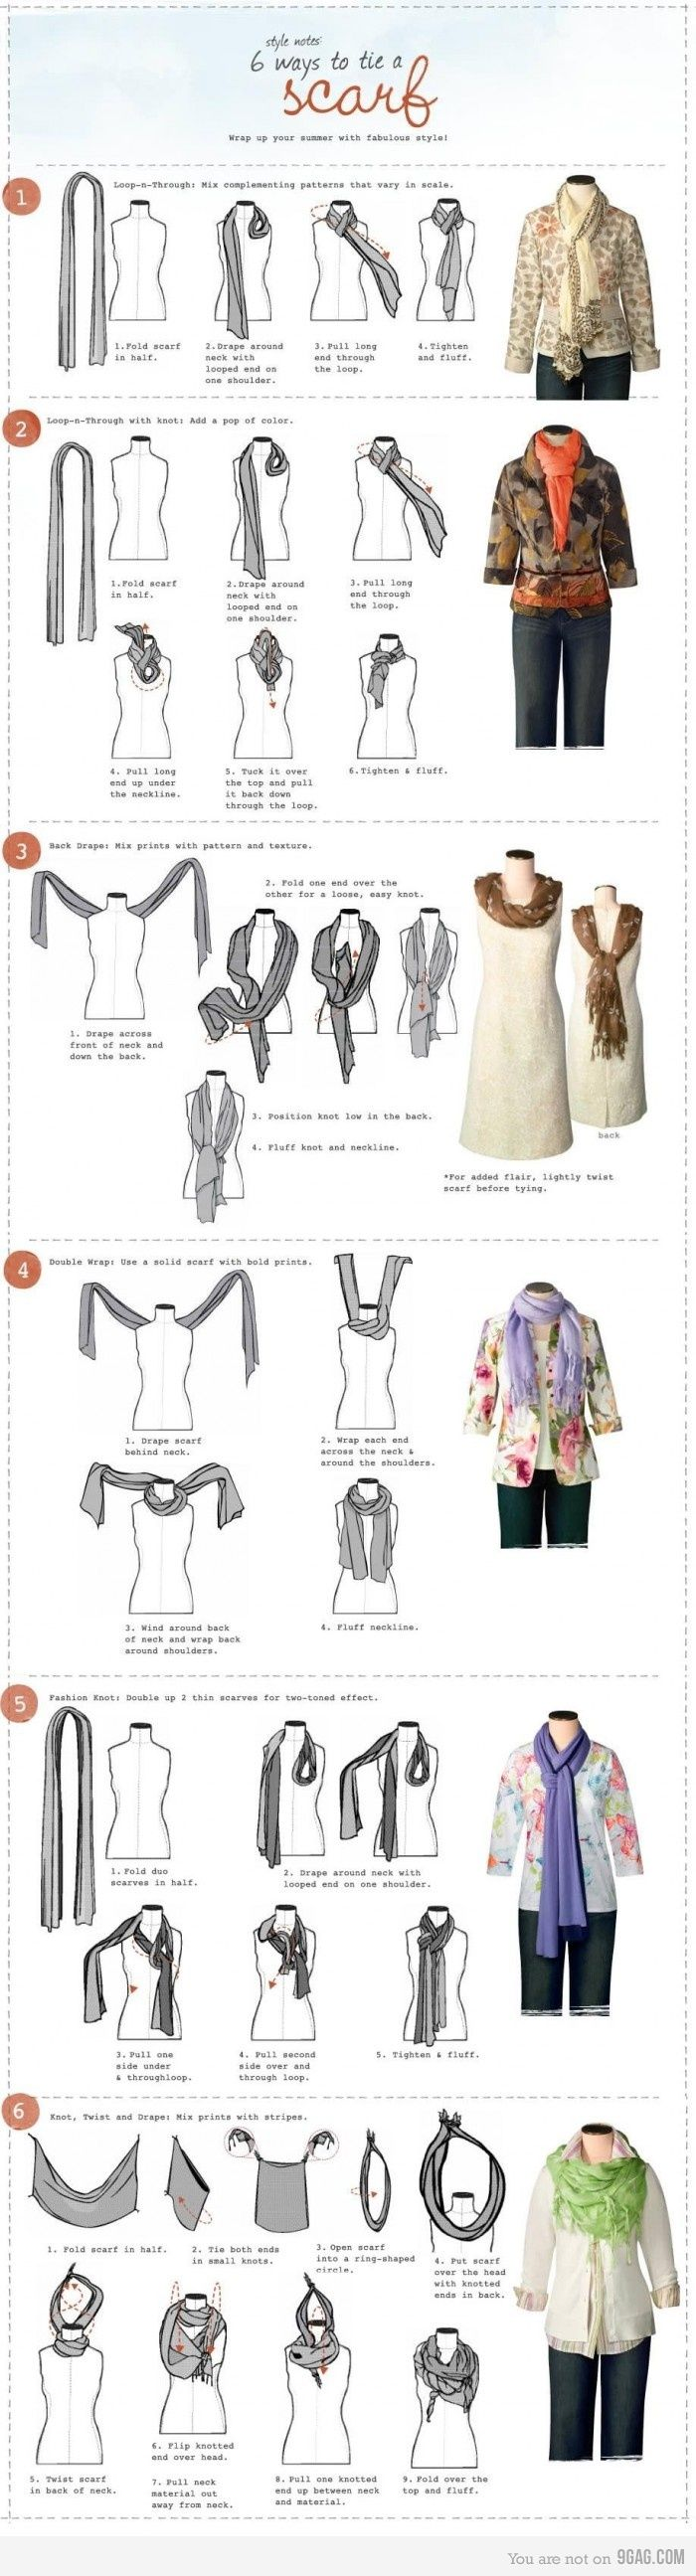 More scarf styles